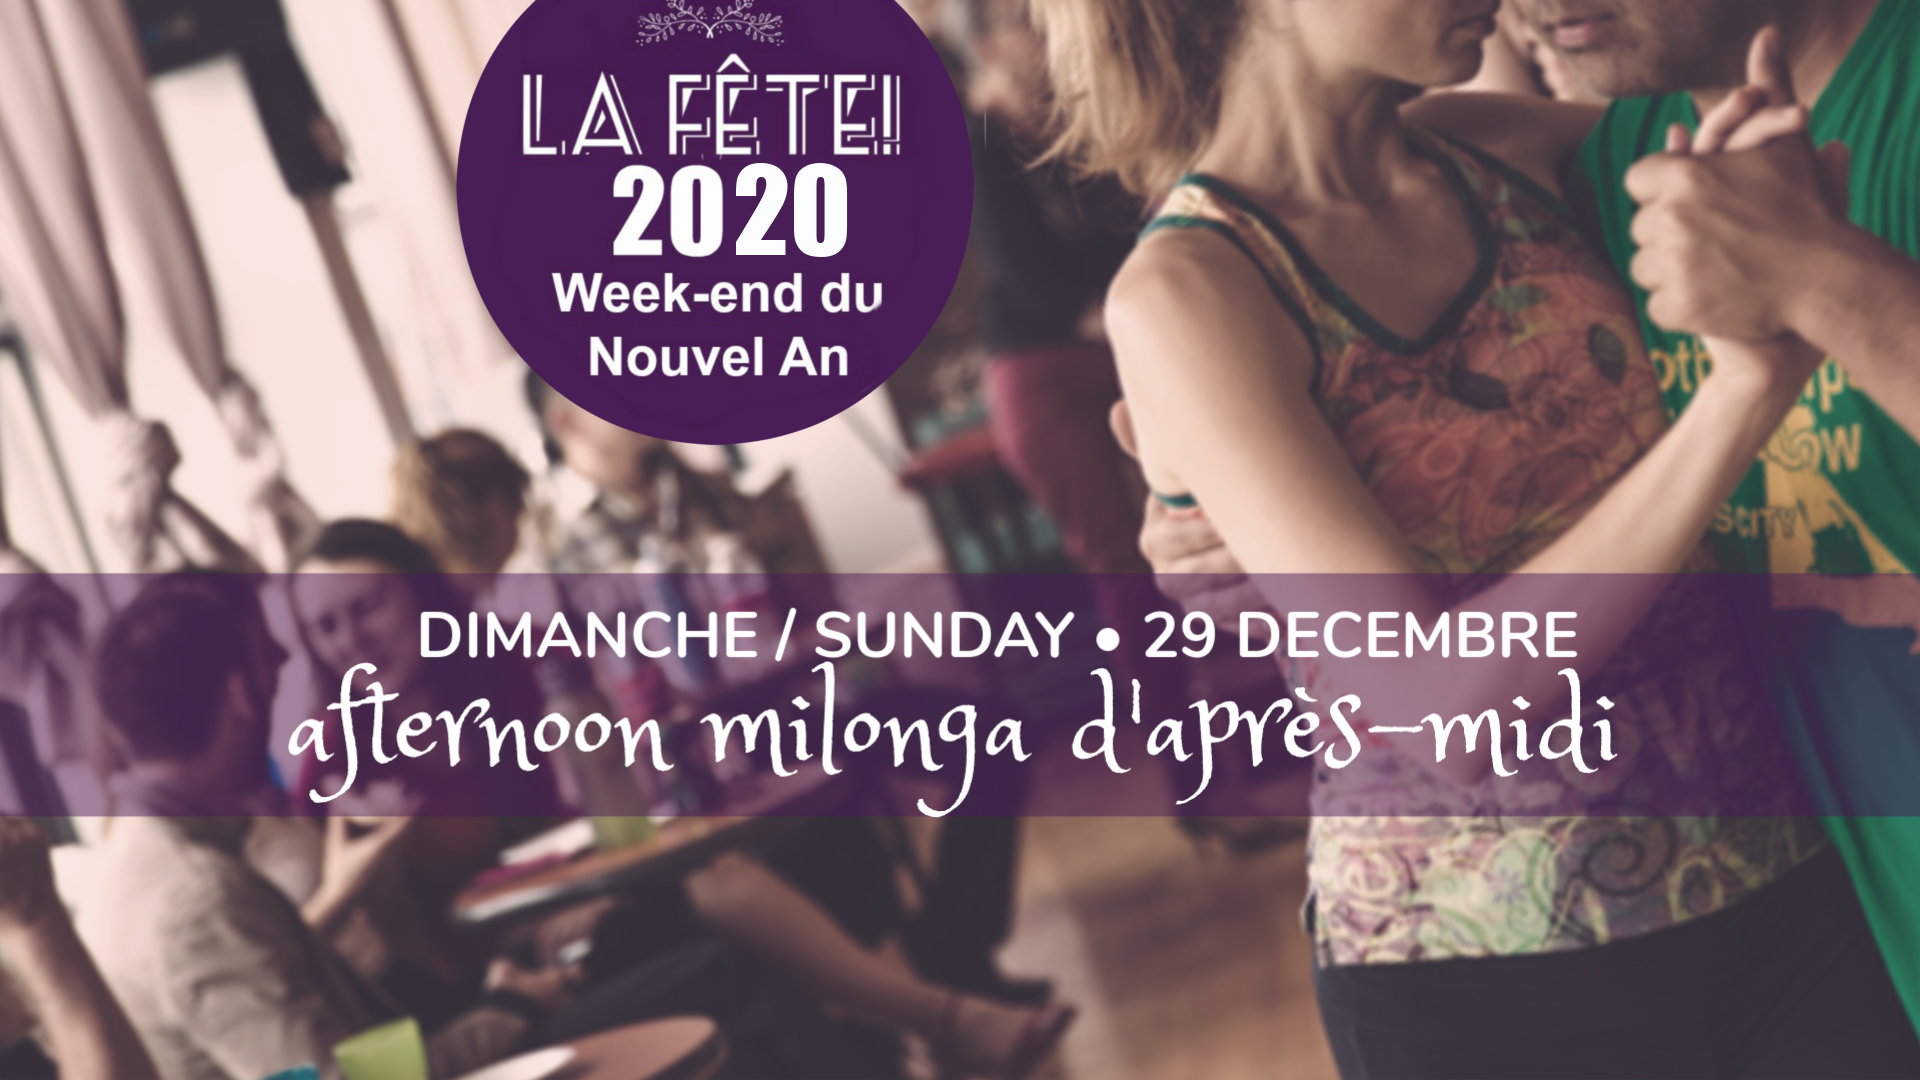 Sunday Daytime Milonga - A Beautiful Afternoon milonga in our room with splendid views of the Park!Coffee and cookies on the house!2:30 pm - 6:30 pm,12$Dj: TBA